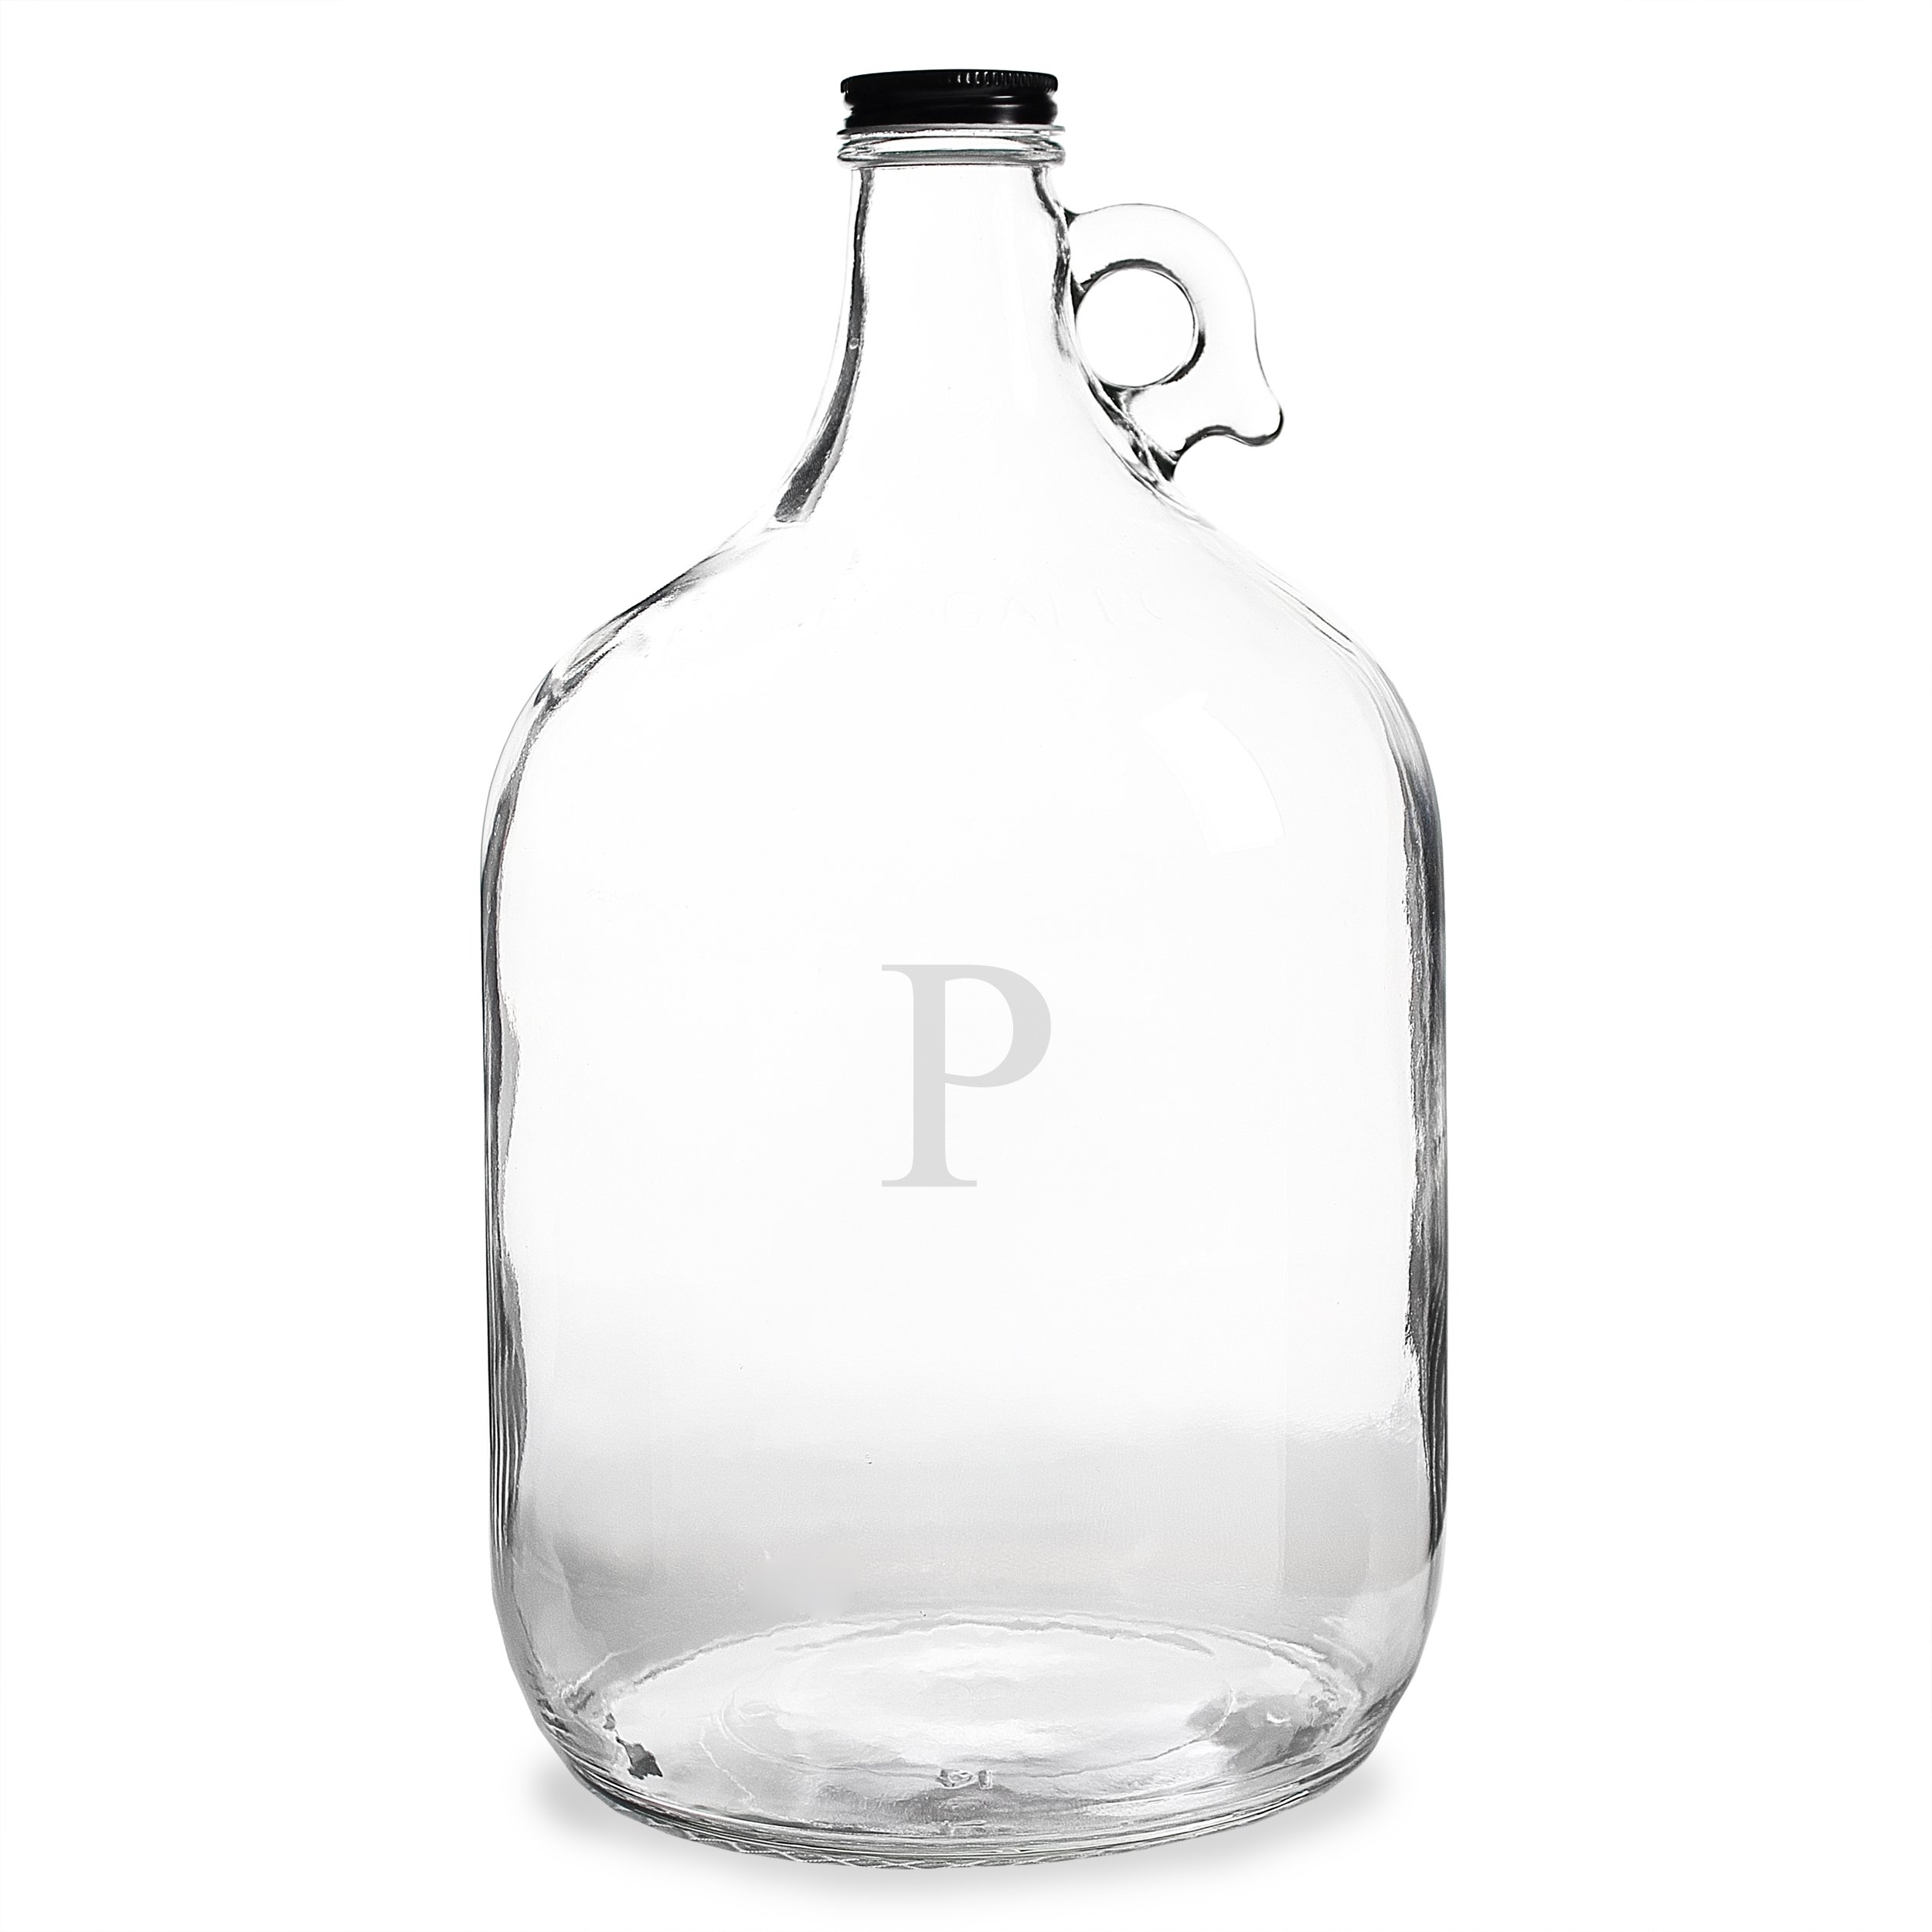 Cathy's Concepts Personalized One Gallon Growler, Letter P